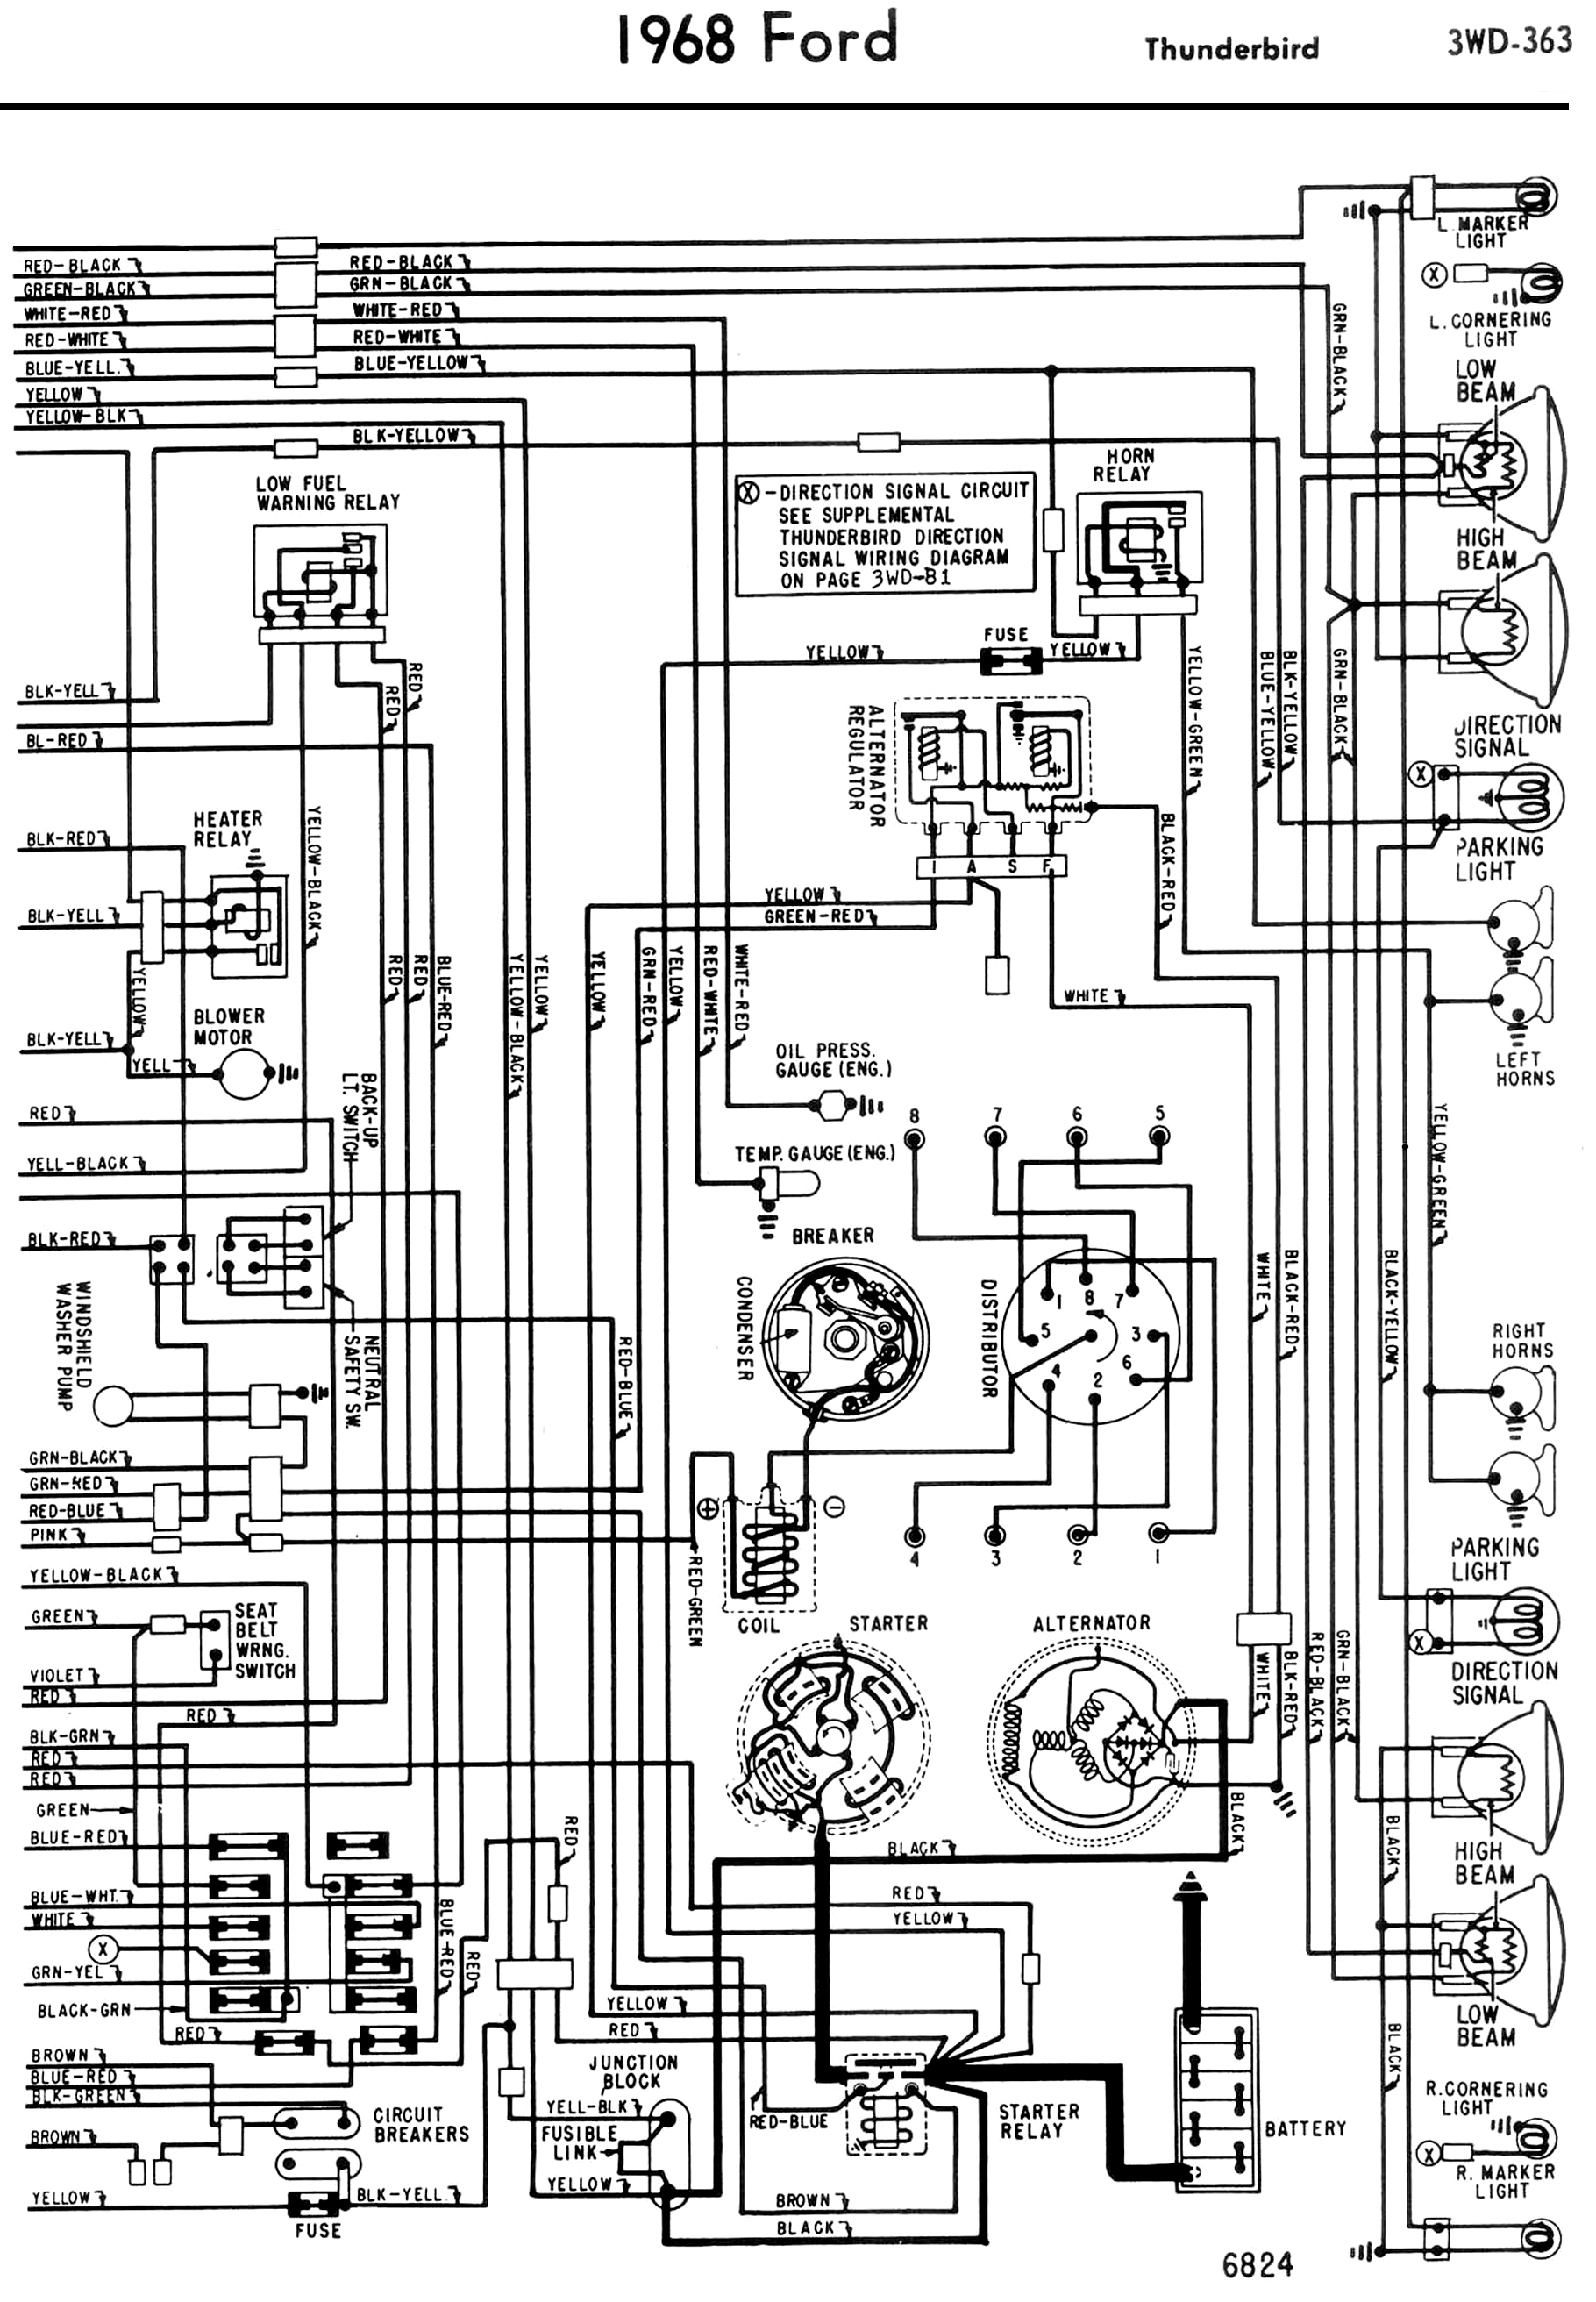 1968 Ford Mustang Tail Light Wiring Diagram Harness 1958 68 Electrical Schematics Rh Squarebirds Org Column